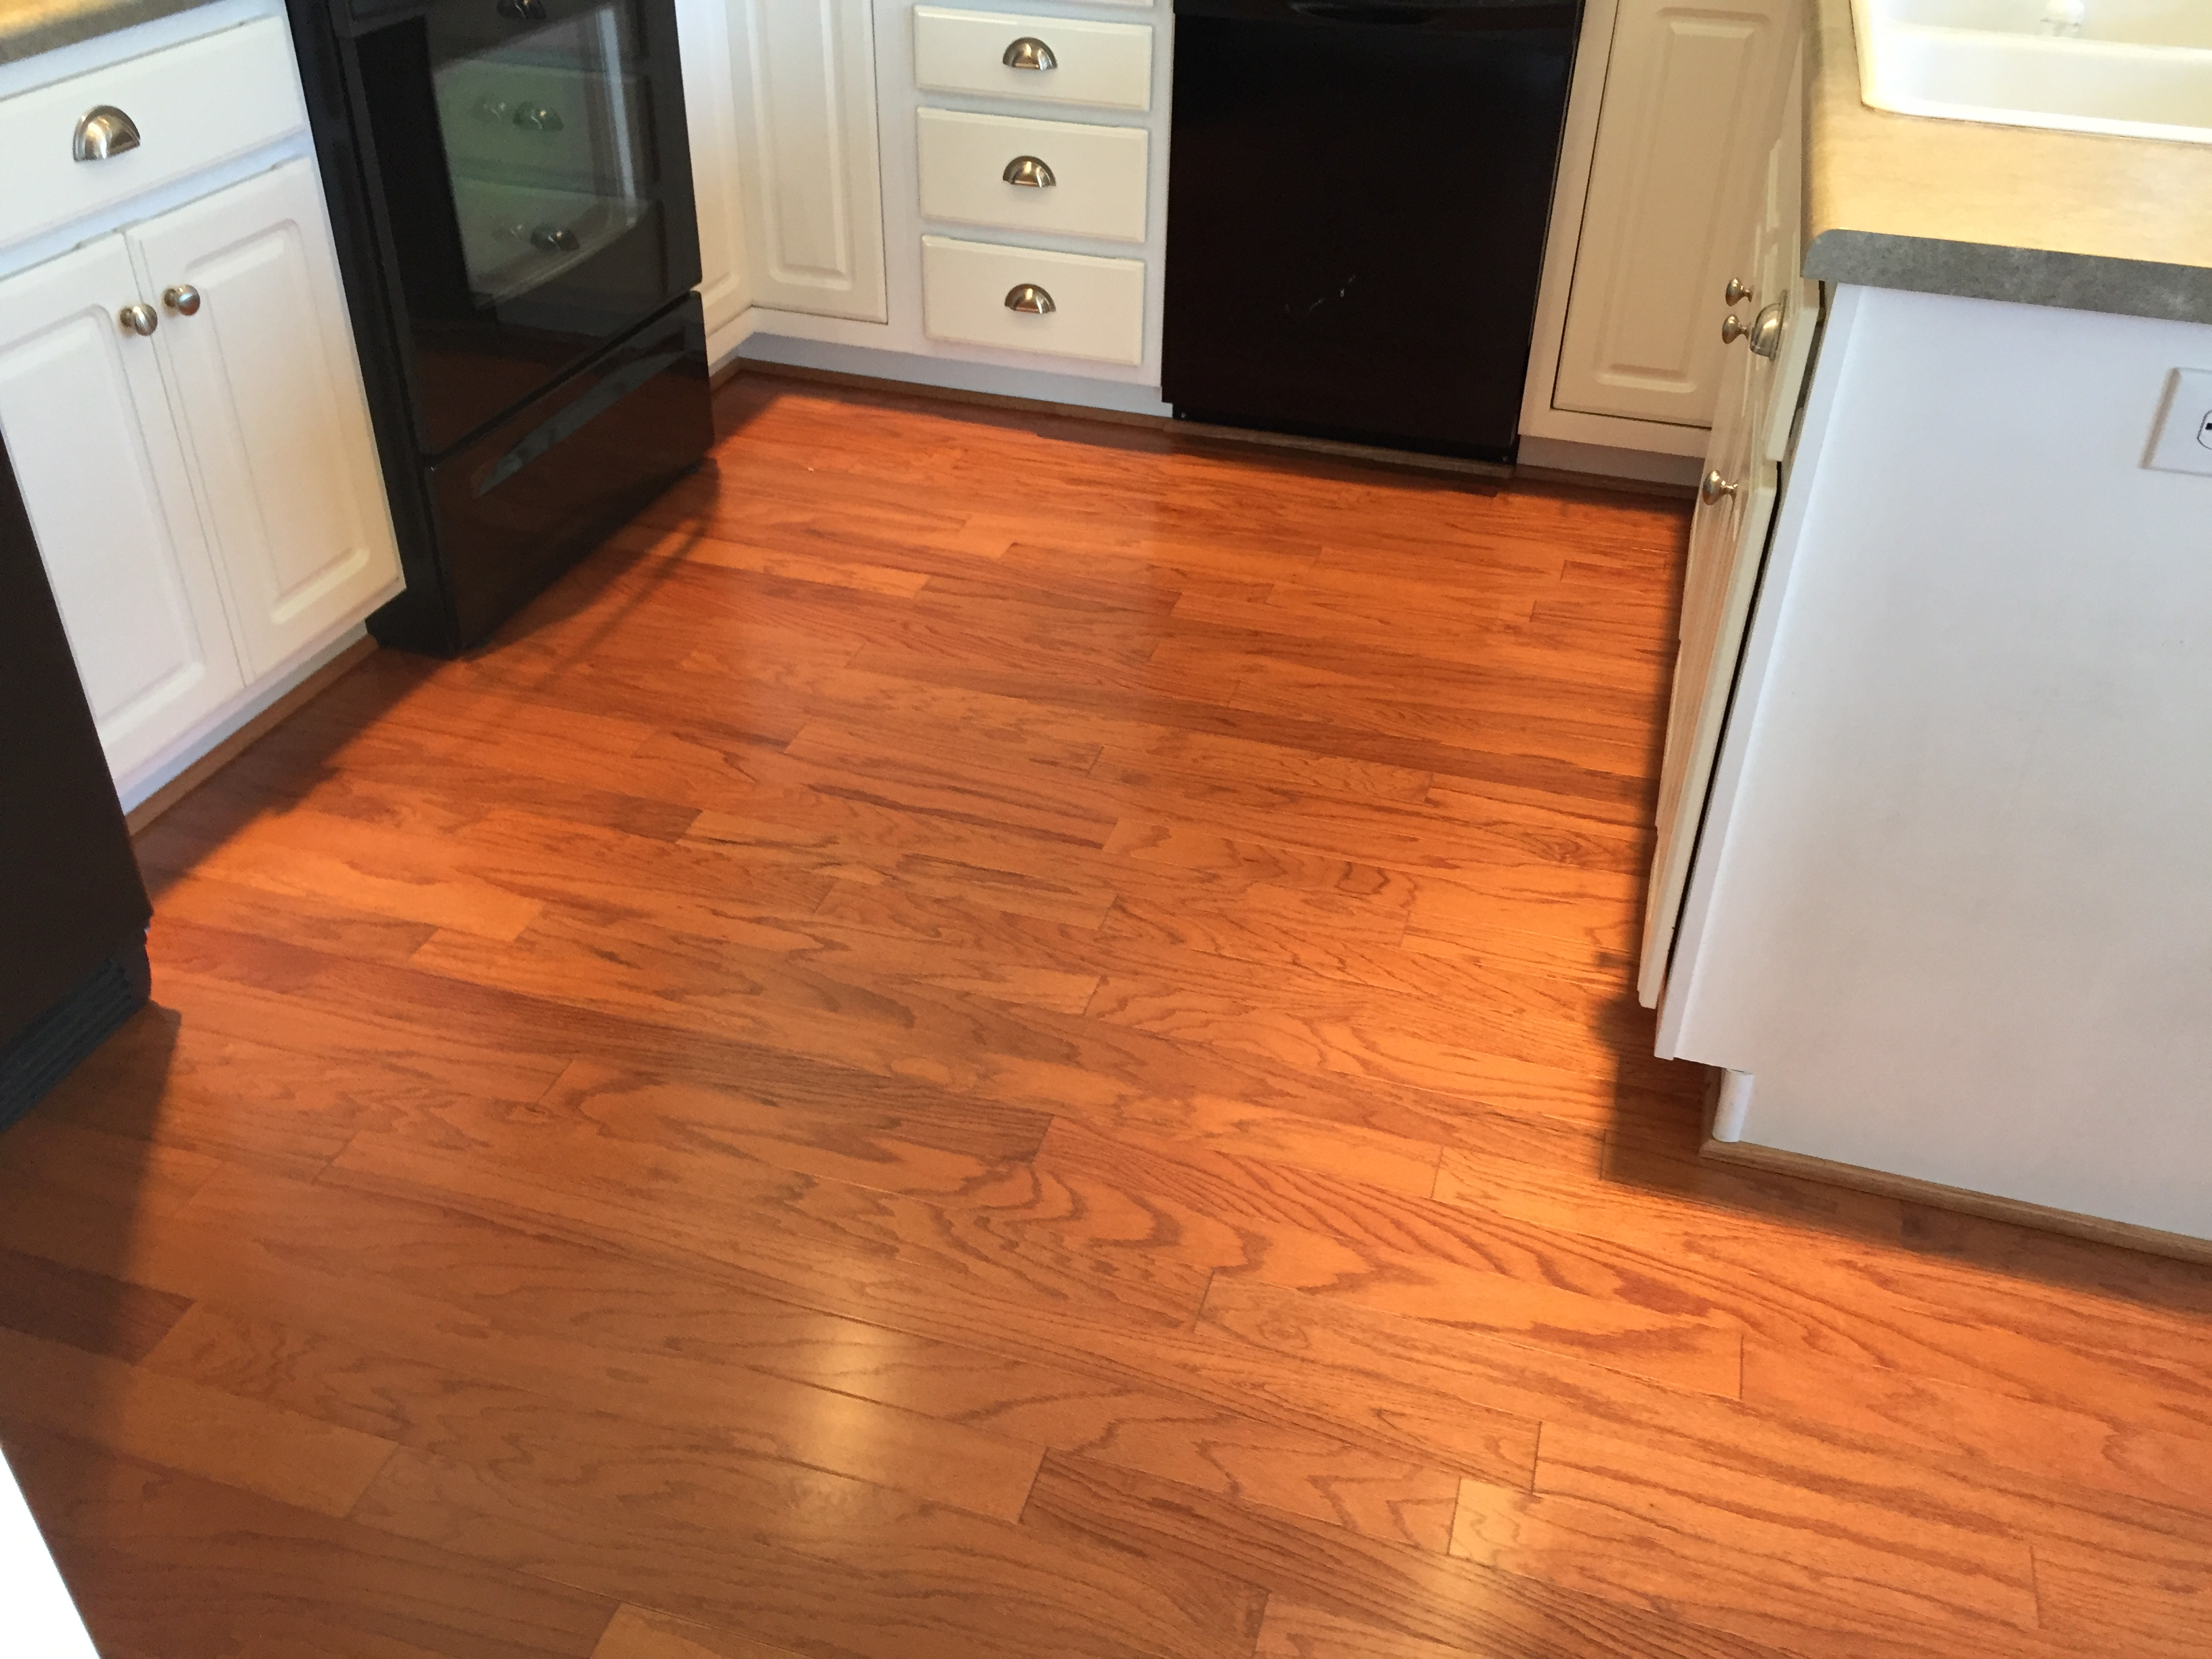 Flooring contractors roanoke va home flooring ideas for Flooring contractors